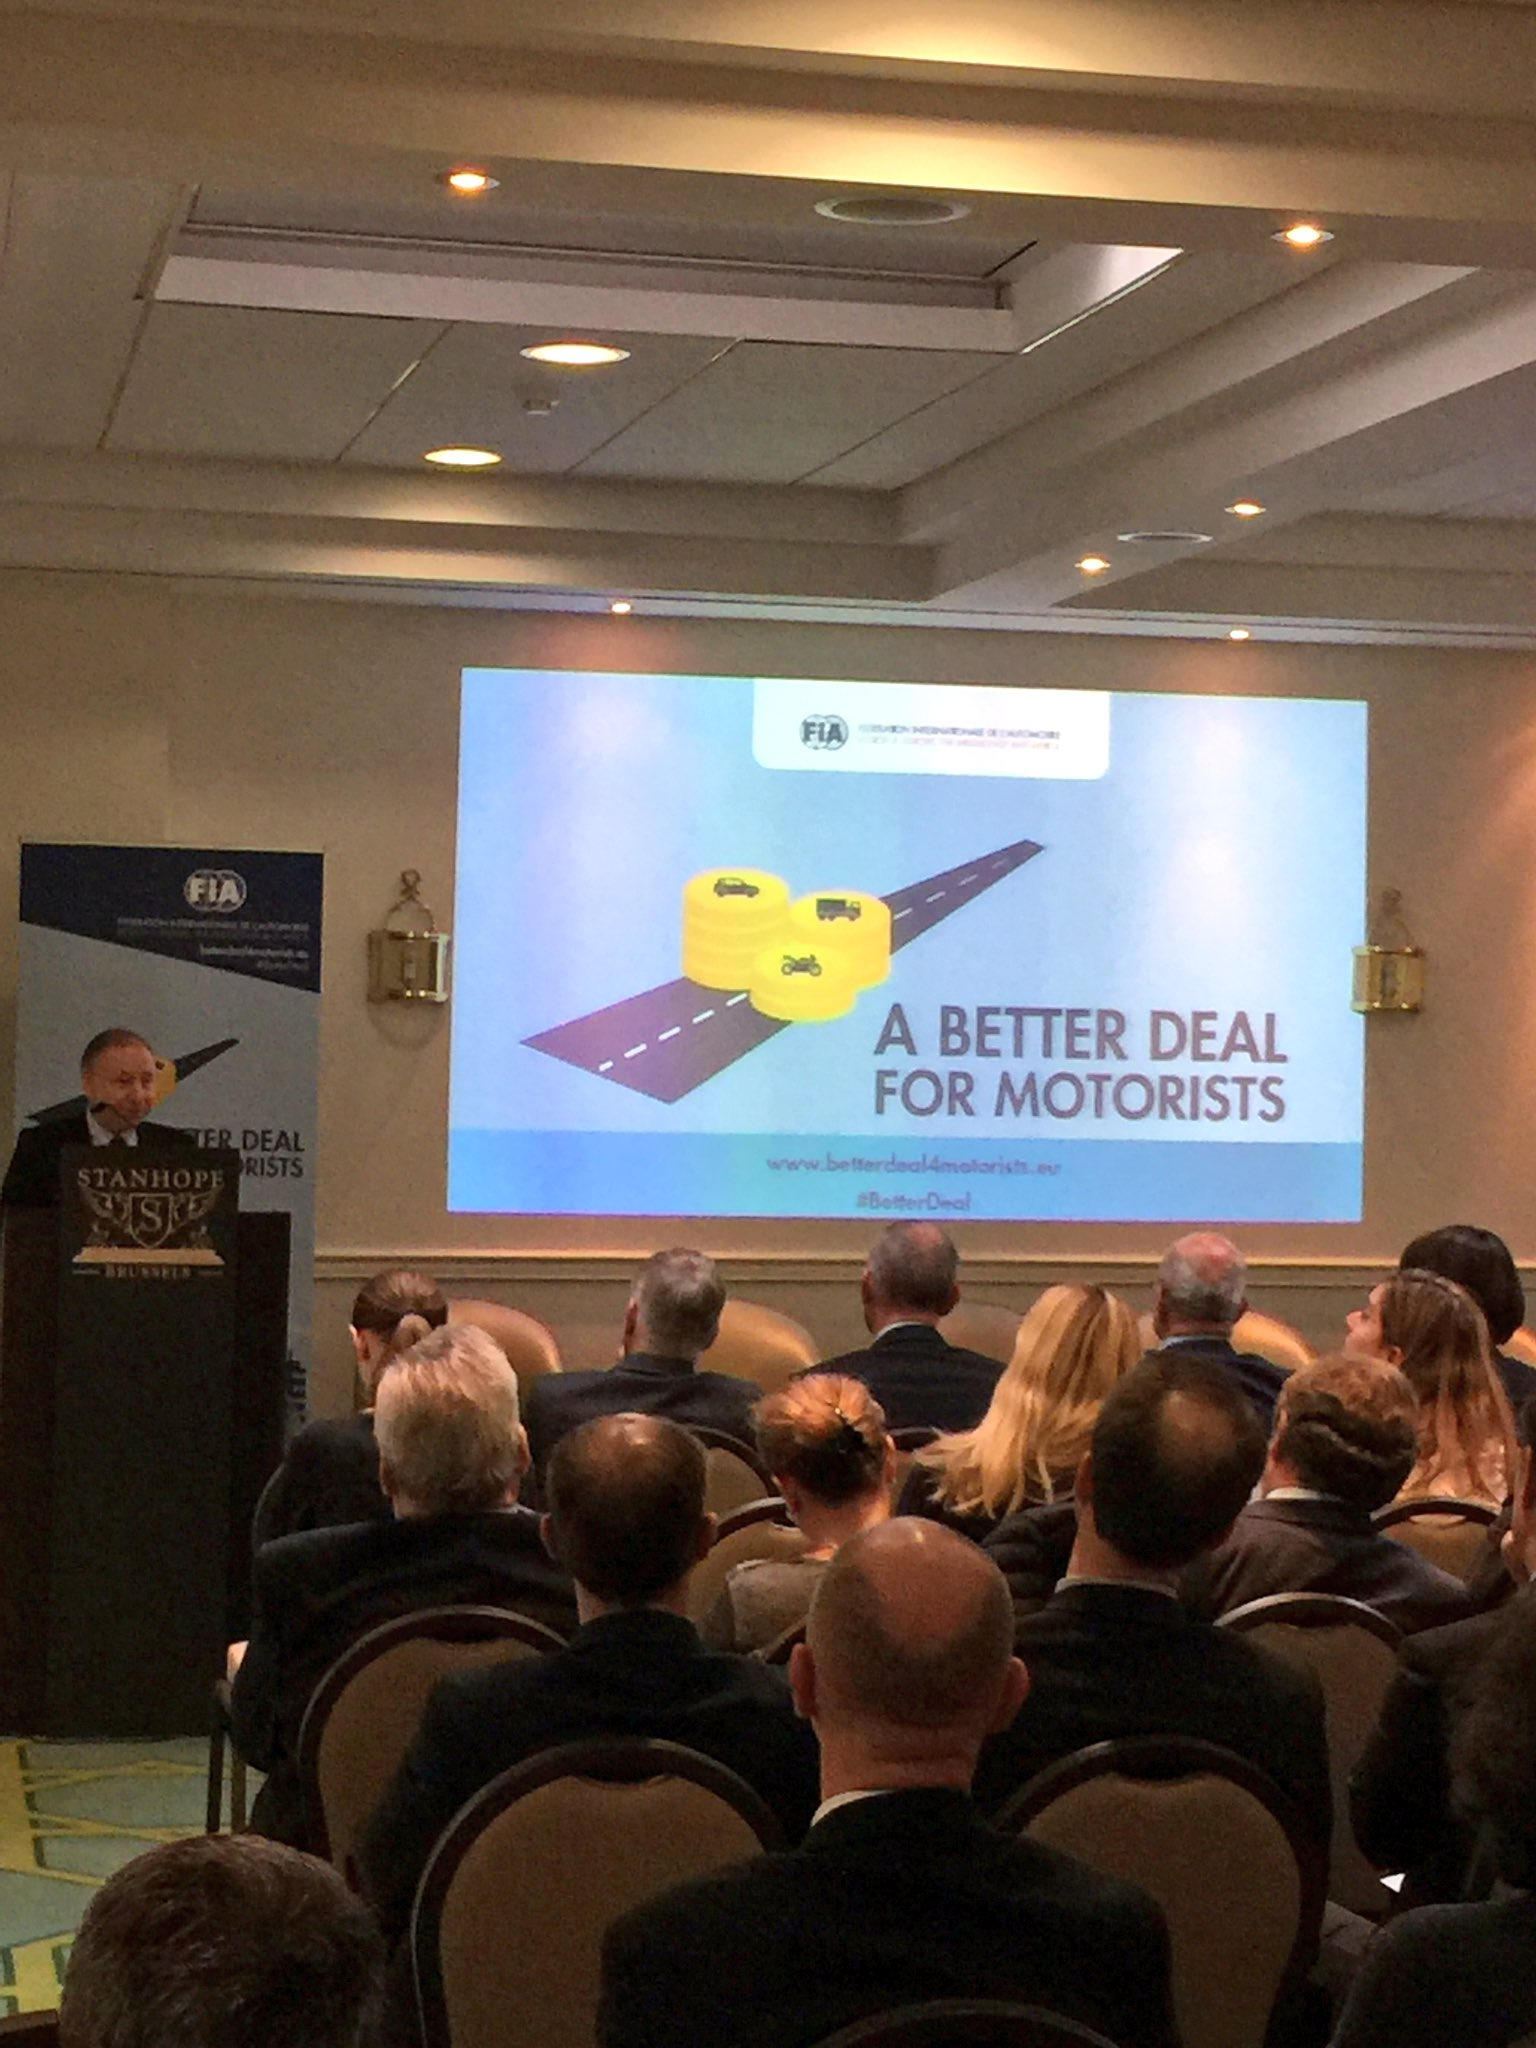 """We all need to work together to improve road users' lives"" @fia #BetterDeal https://t.co/L9UCwwaO7F"